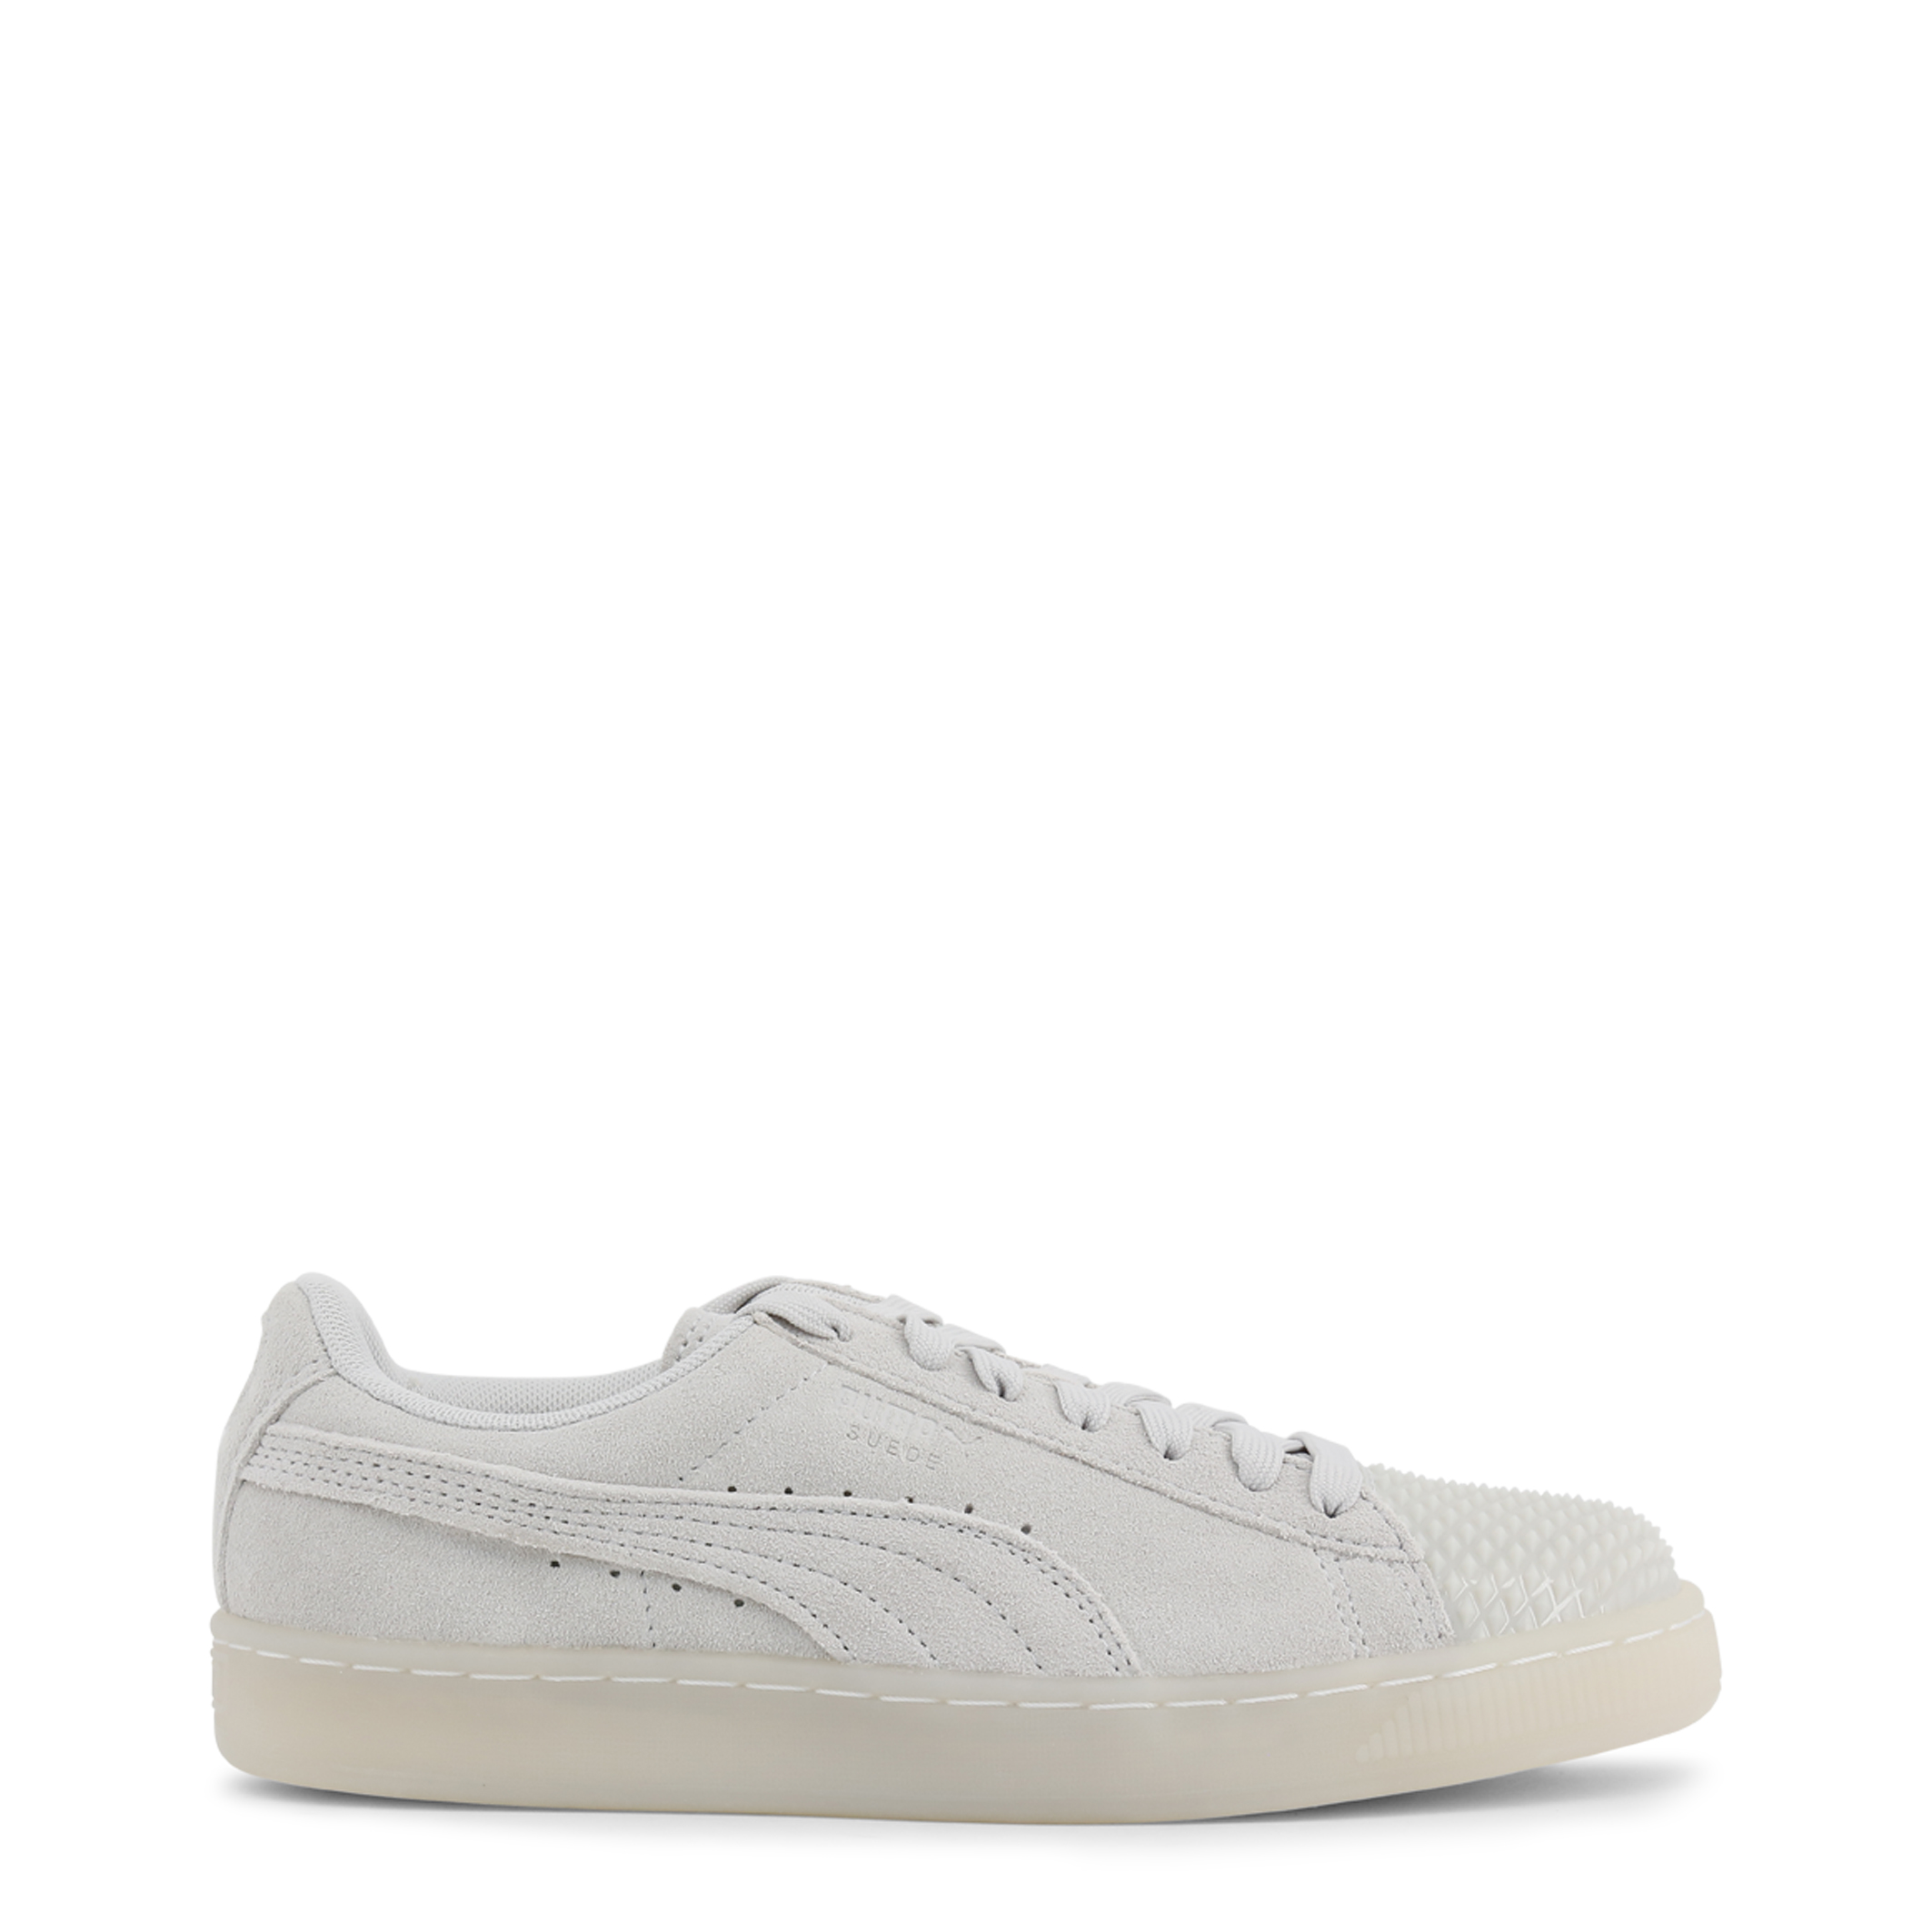 Baskets / Sneakers  Puma 365859 grey